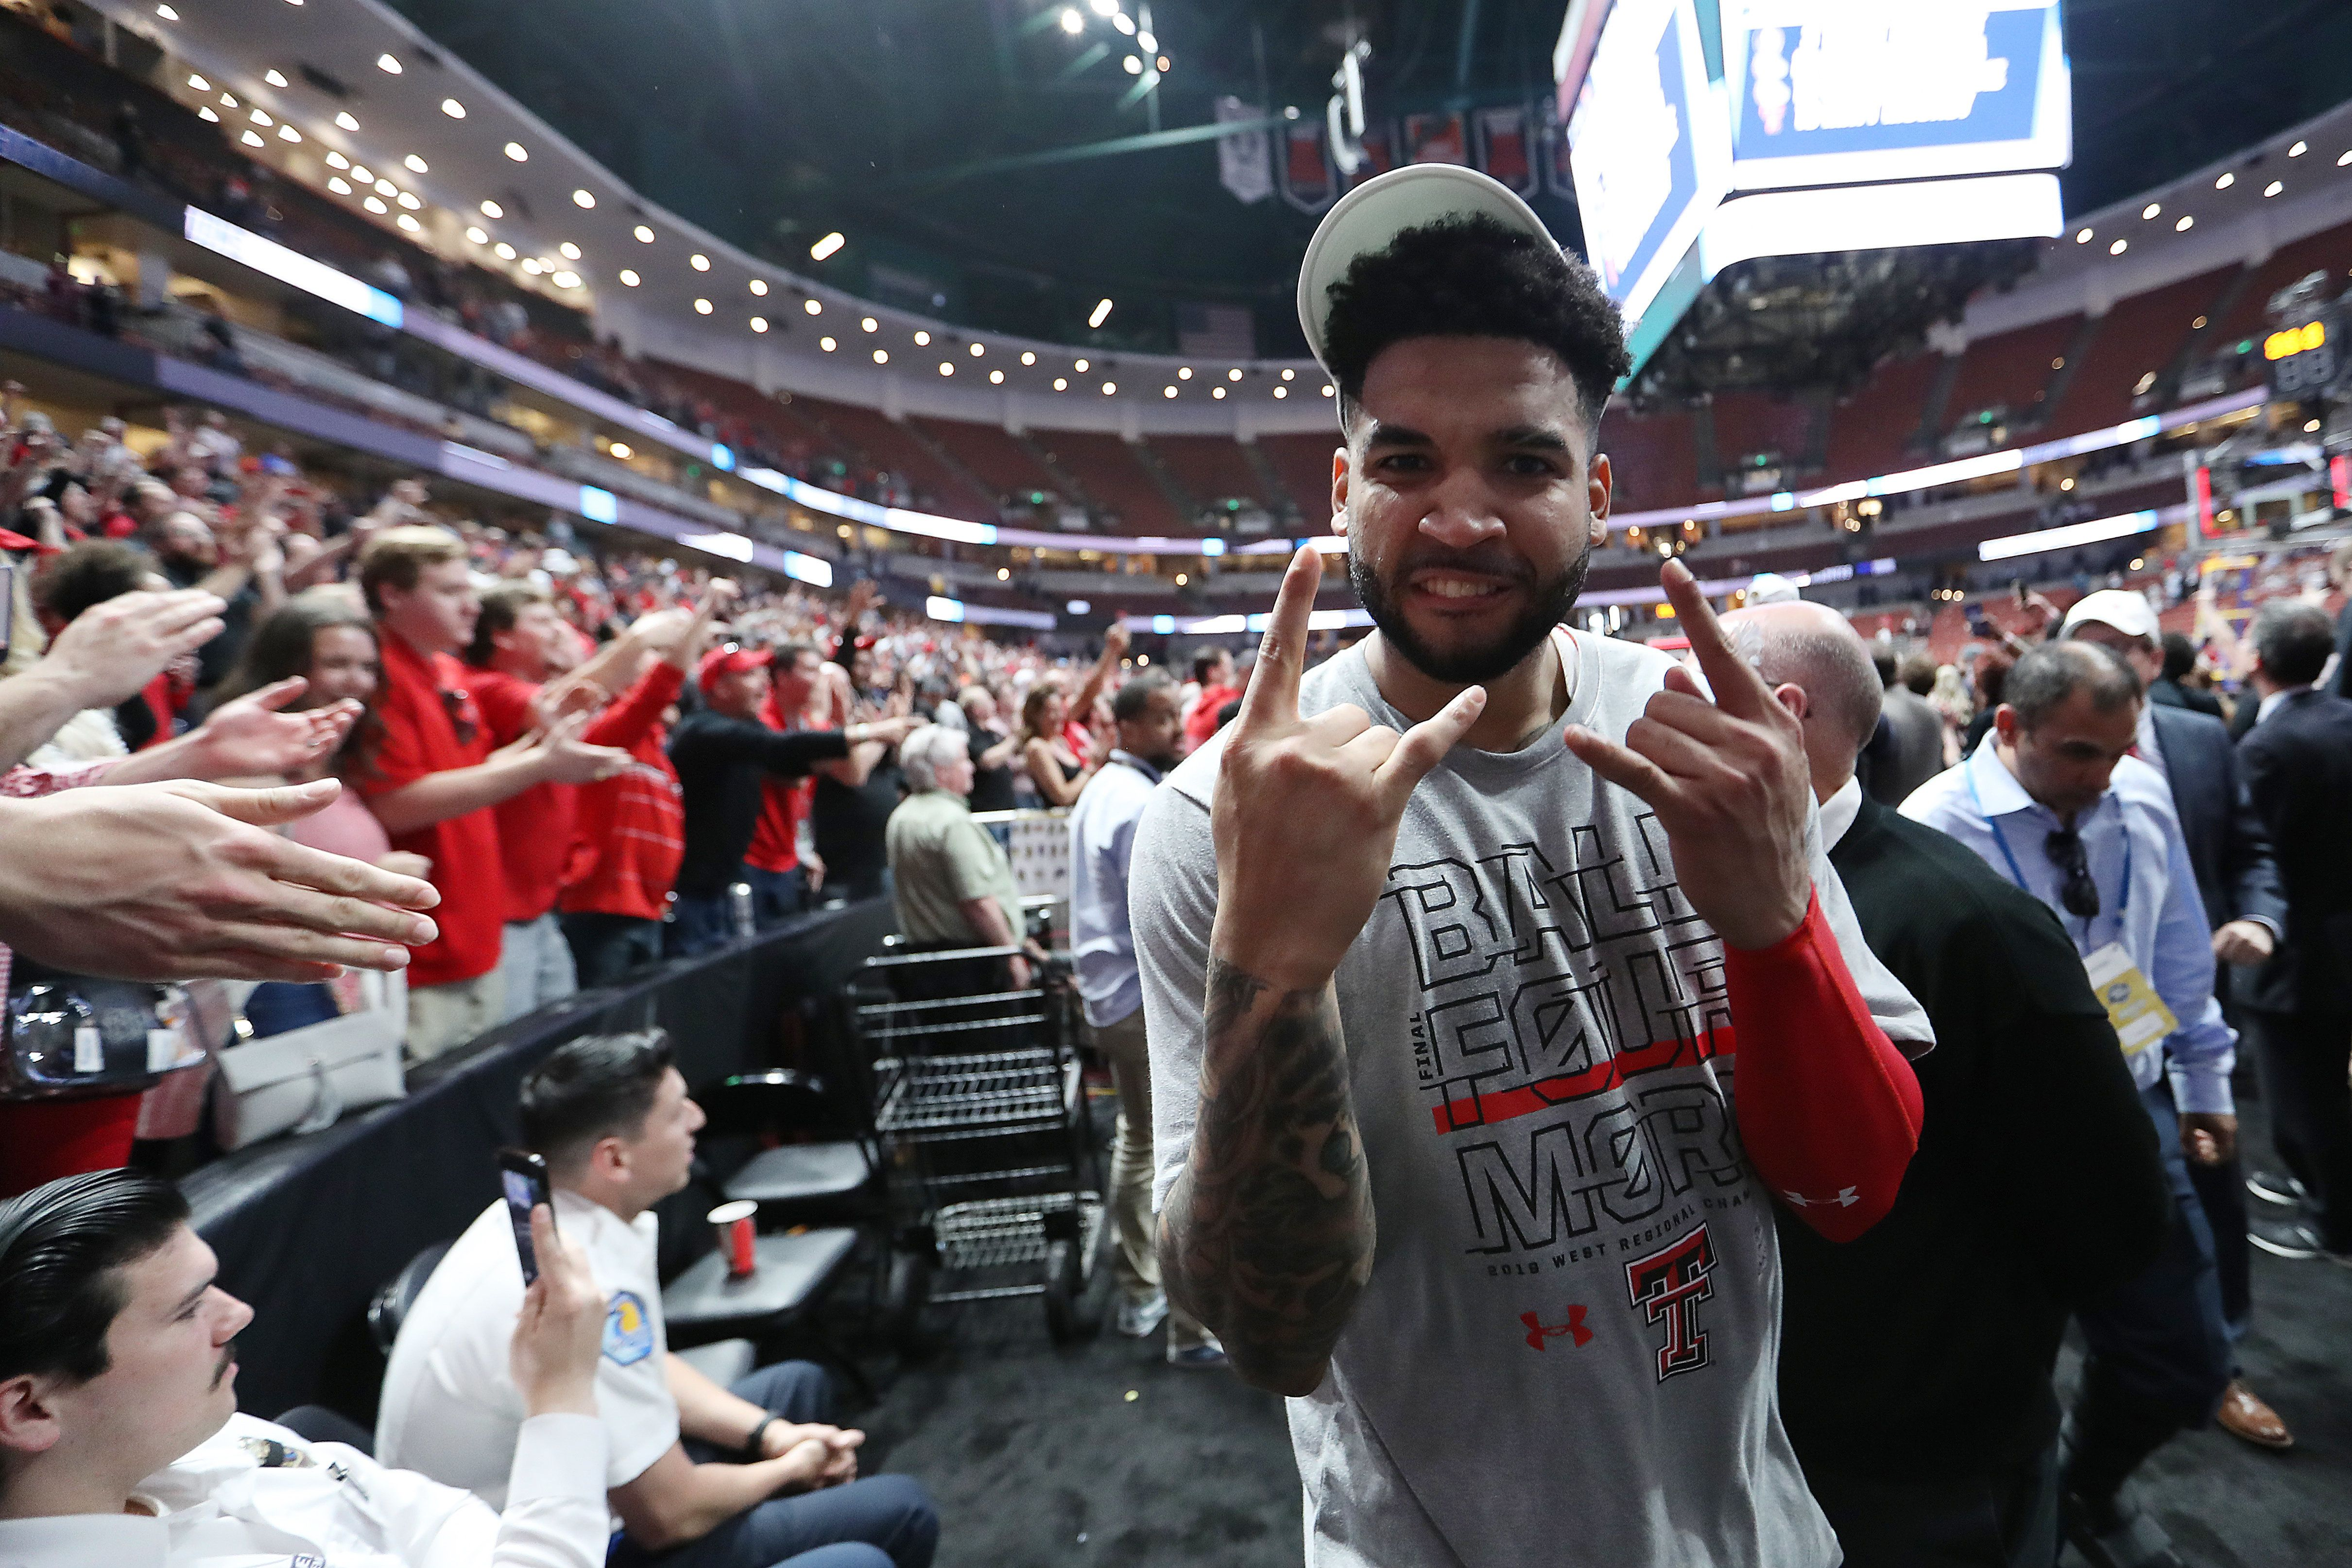 ANAHEIM, CALIFORNIA - MARCH 30: Brandone Francis #1 of the Texas Tech Red Raiders celebrates as he walks off the court after defeating the Gonzaga Bulldogs during the 2019 NCAA Men's Basketball Tournament West Regional at Honda Center on March 30, 2019 in Anaheim, California. (Photo by Sean M. Haffey/Getty Images)